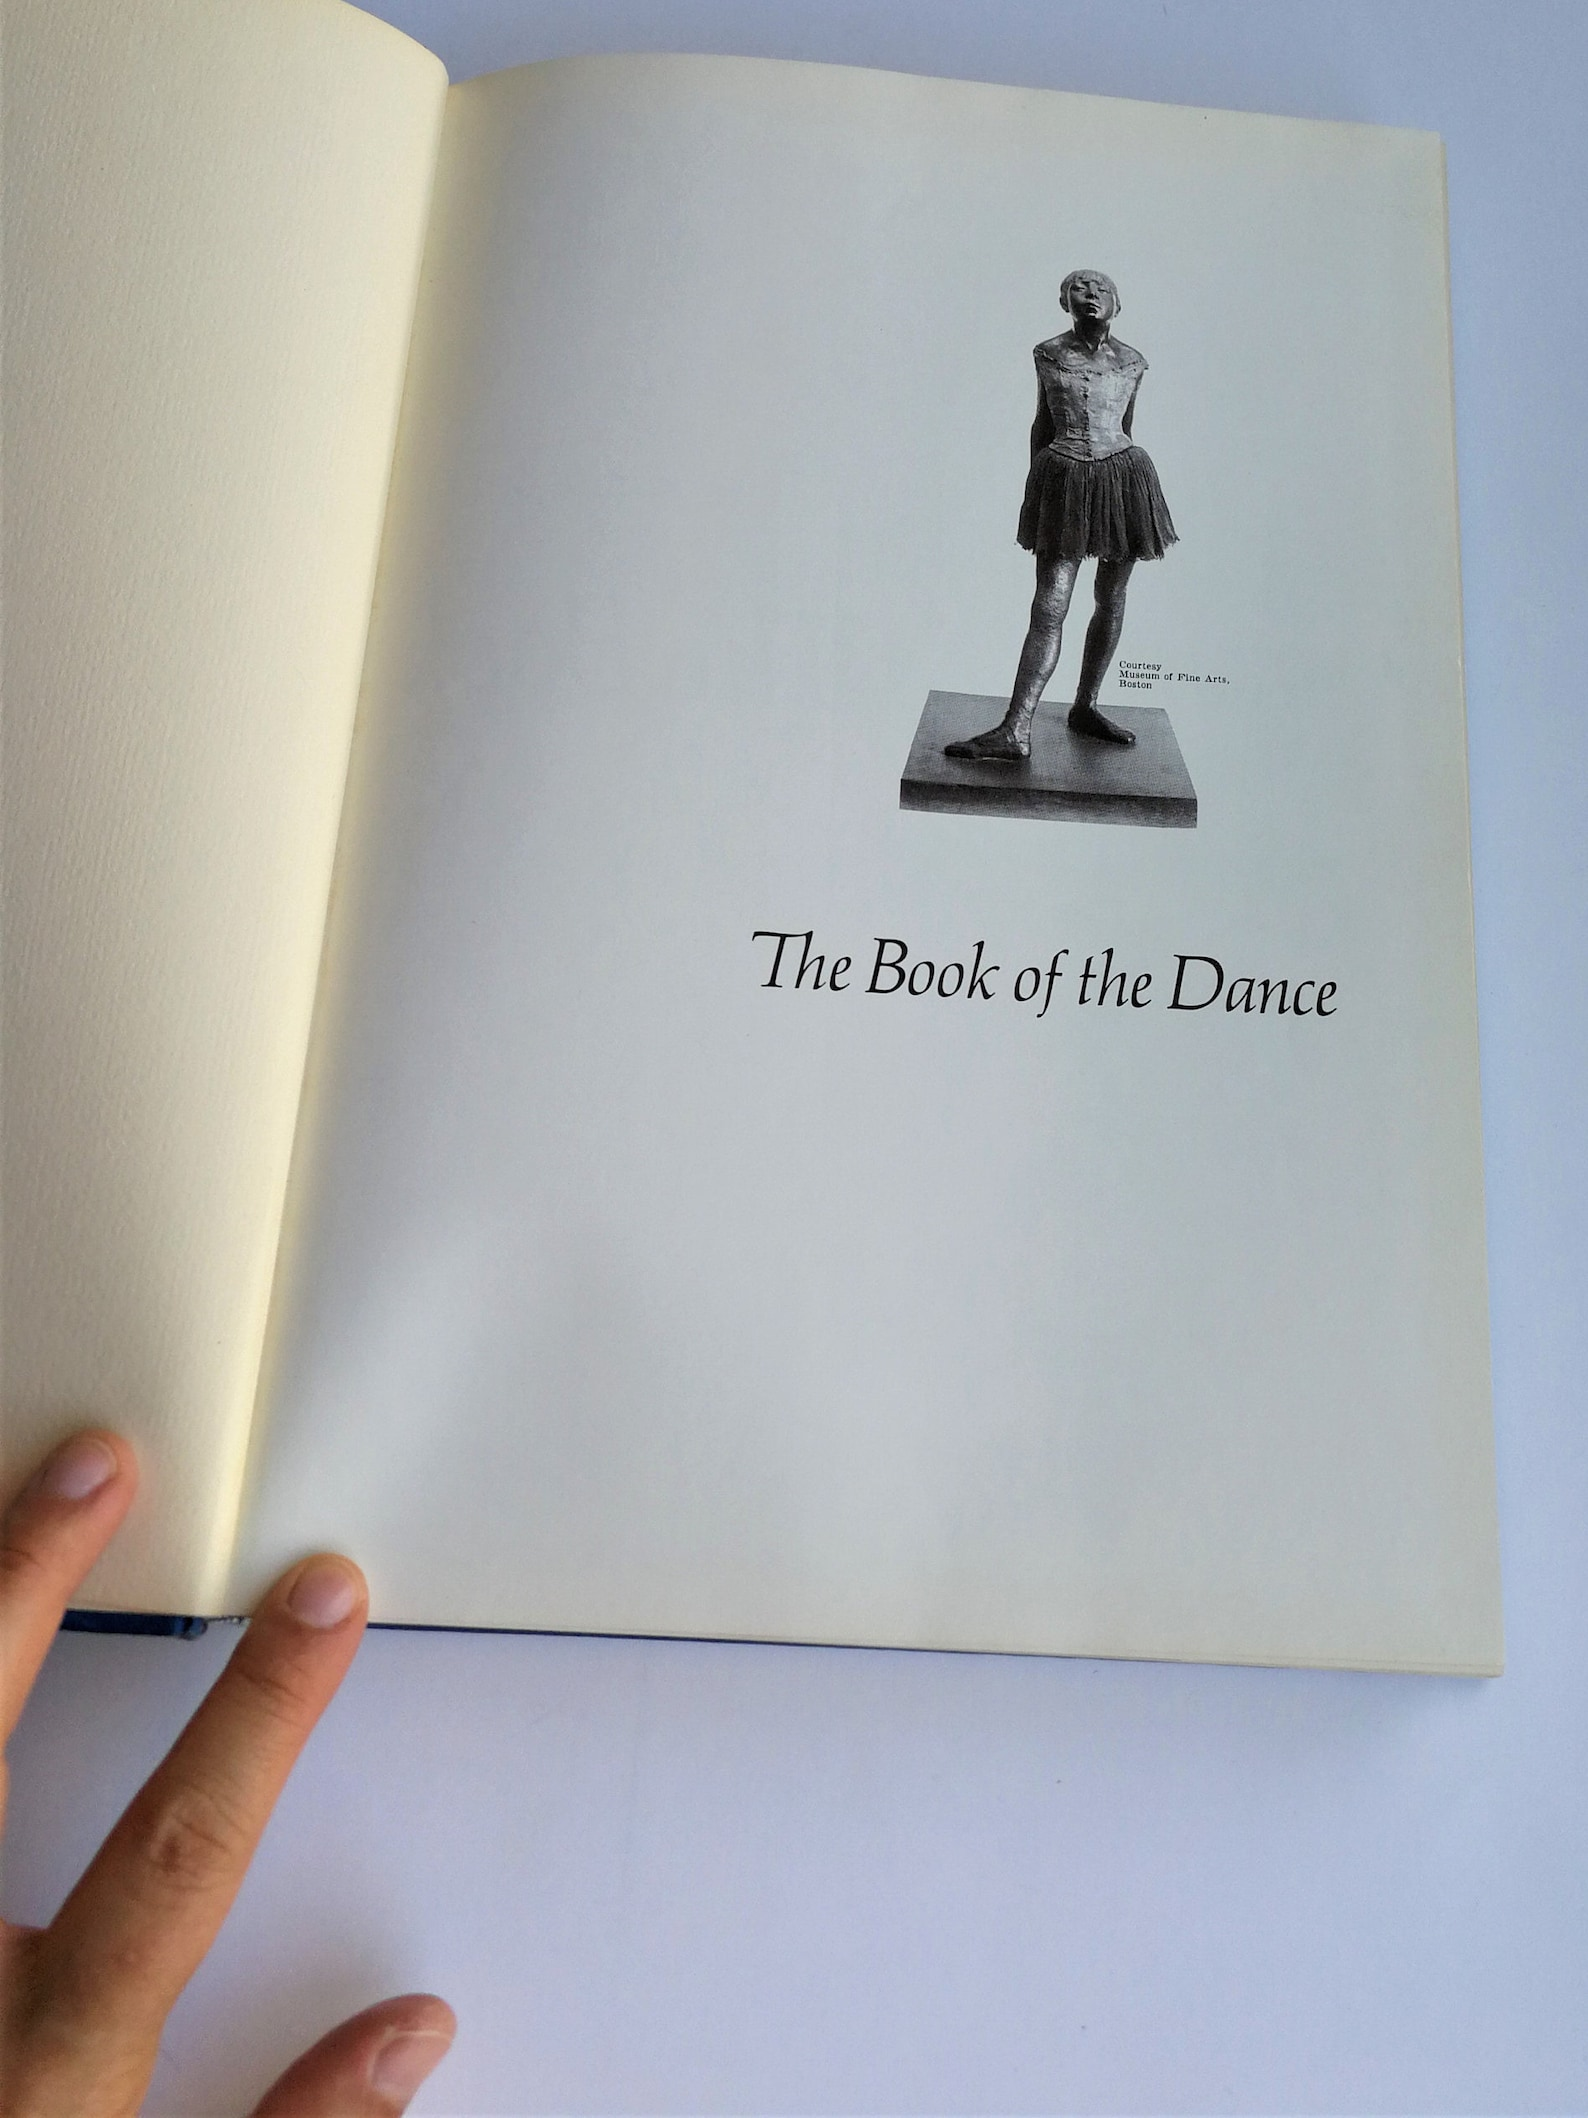 vintage 60s ballet book - the book of the dance - agnes de mille - deluxe goldencraft edition - hard cover - out of print - moth